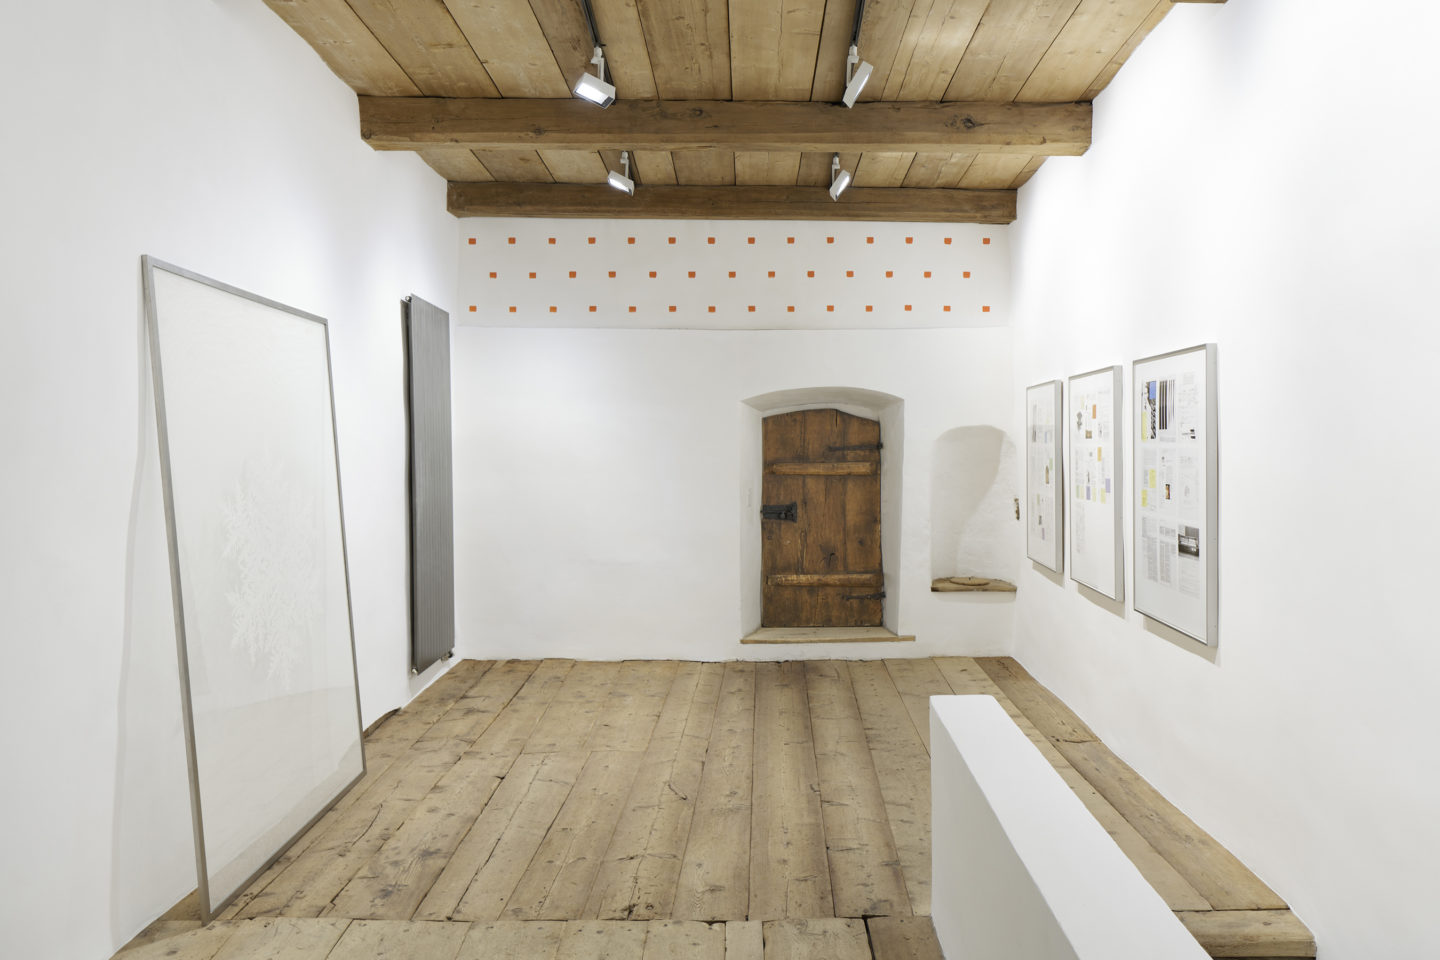 Installation View Bethan Huws «Soloshow» at Galerie Tschudi, Zuoz / Photo: Ralph Feiner / Courtesy: the artist and Galerie Tschudi, Zuoz